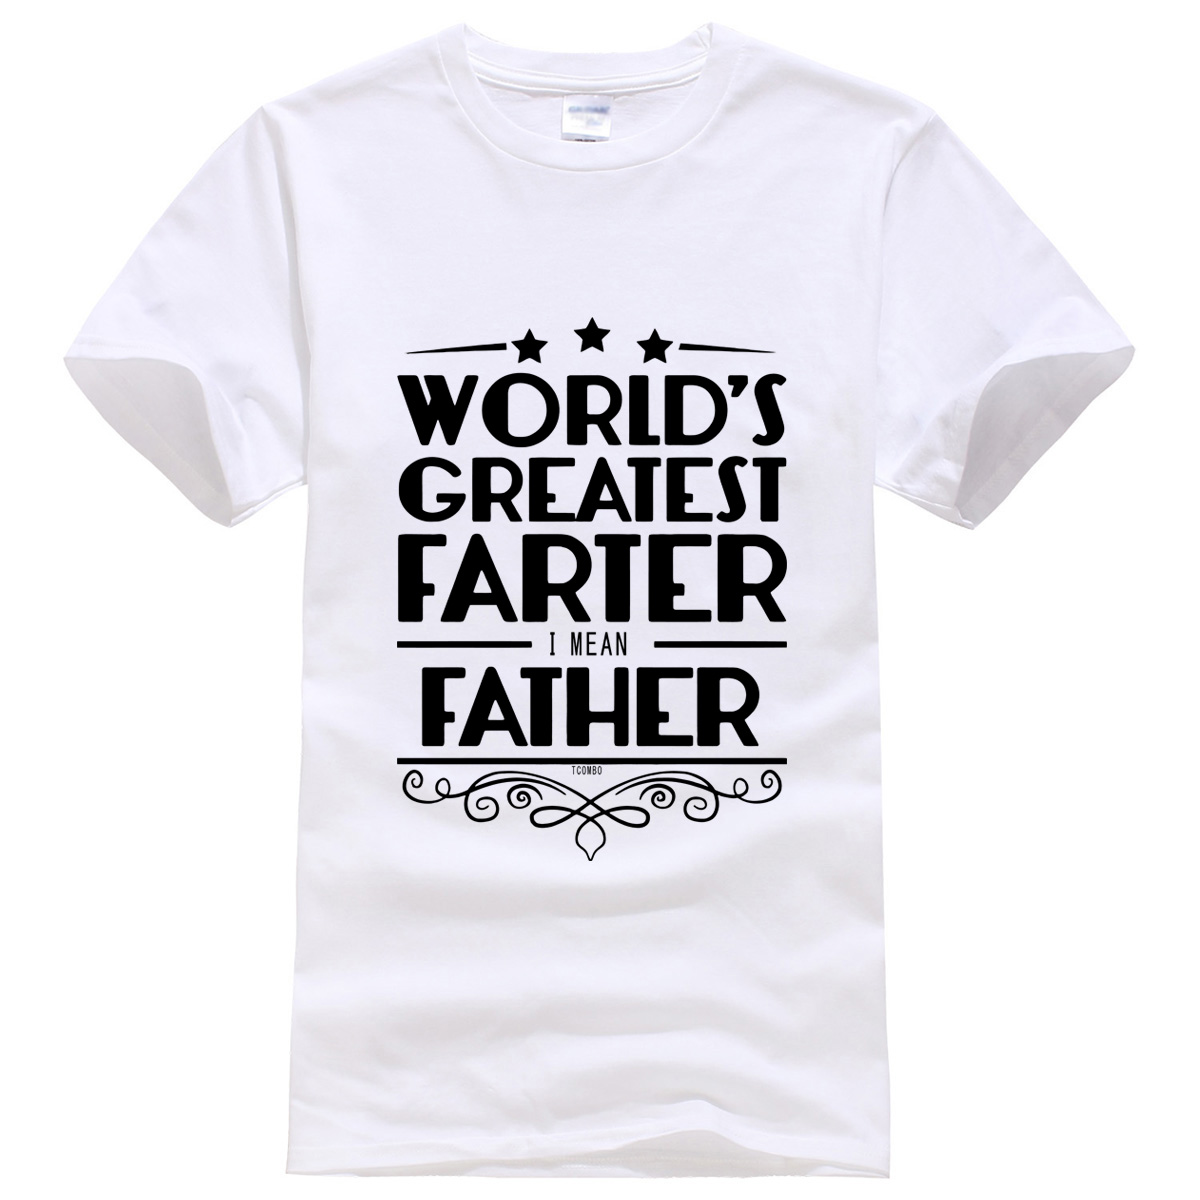 2019 summer T-shirt World's Greatest Farter Father letter funny men's T-shirts kpop sportwear crossfit brand free shipping tops